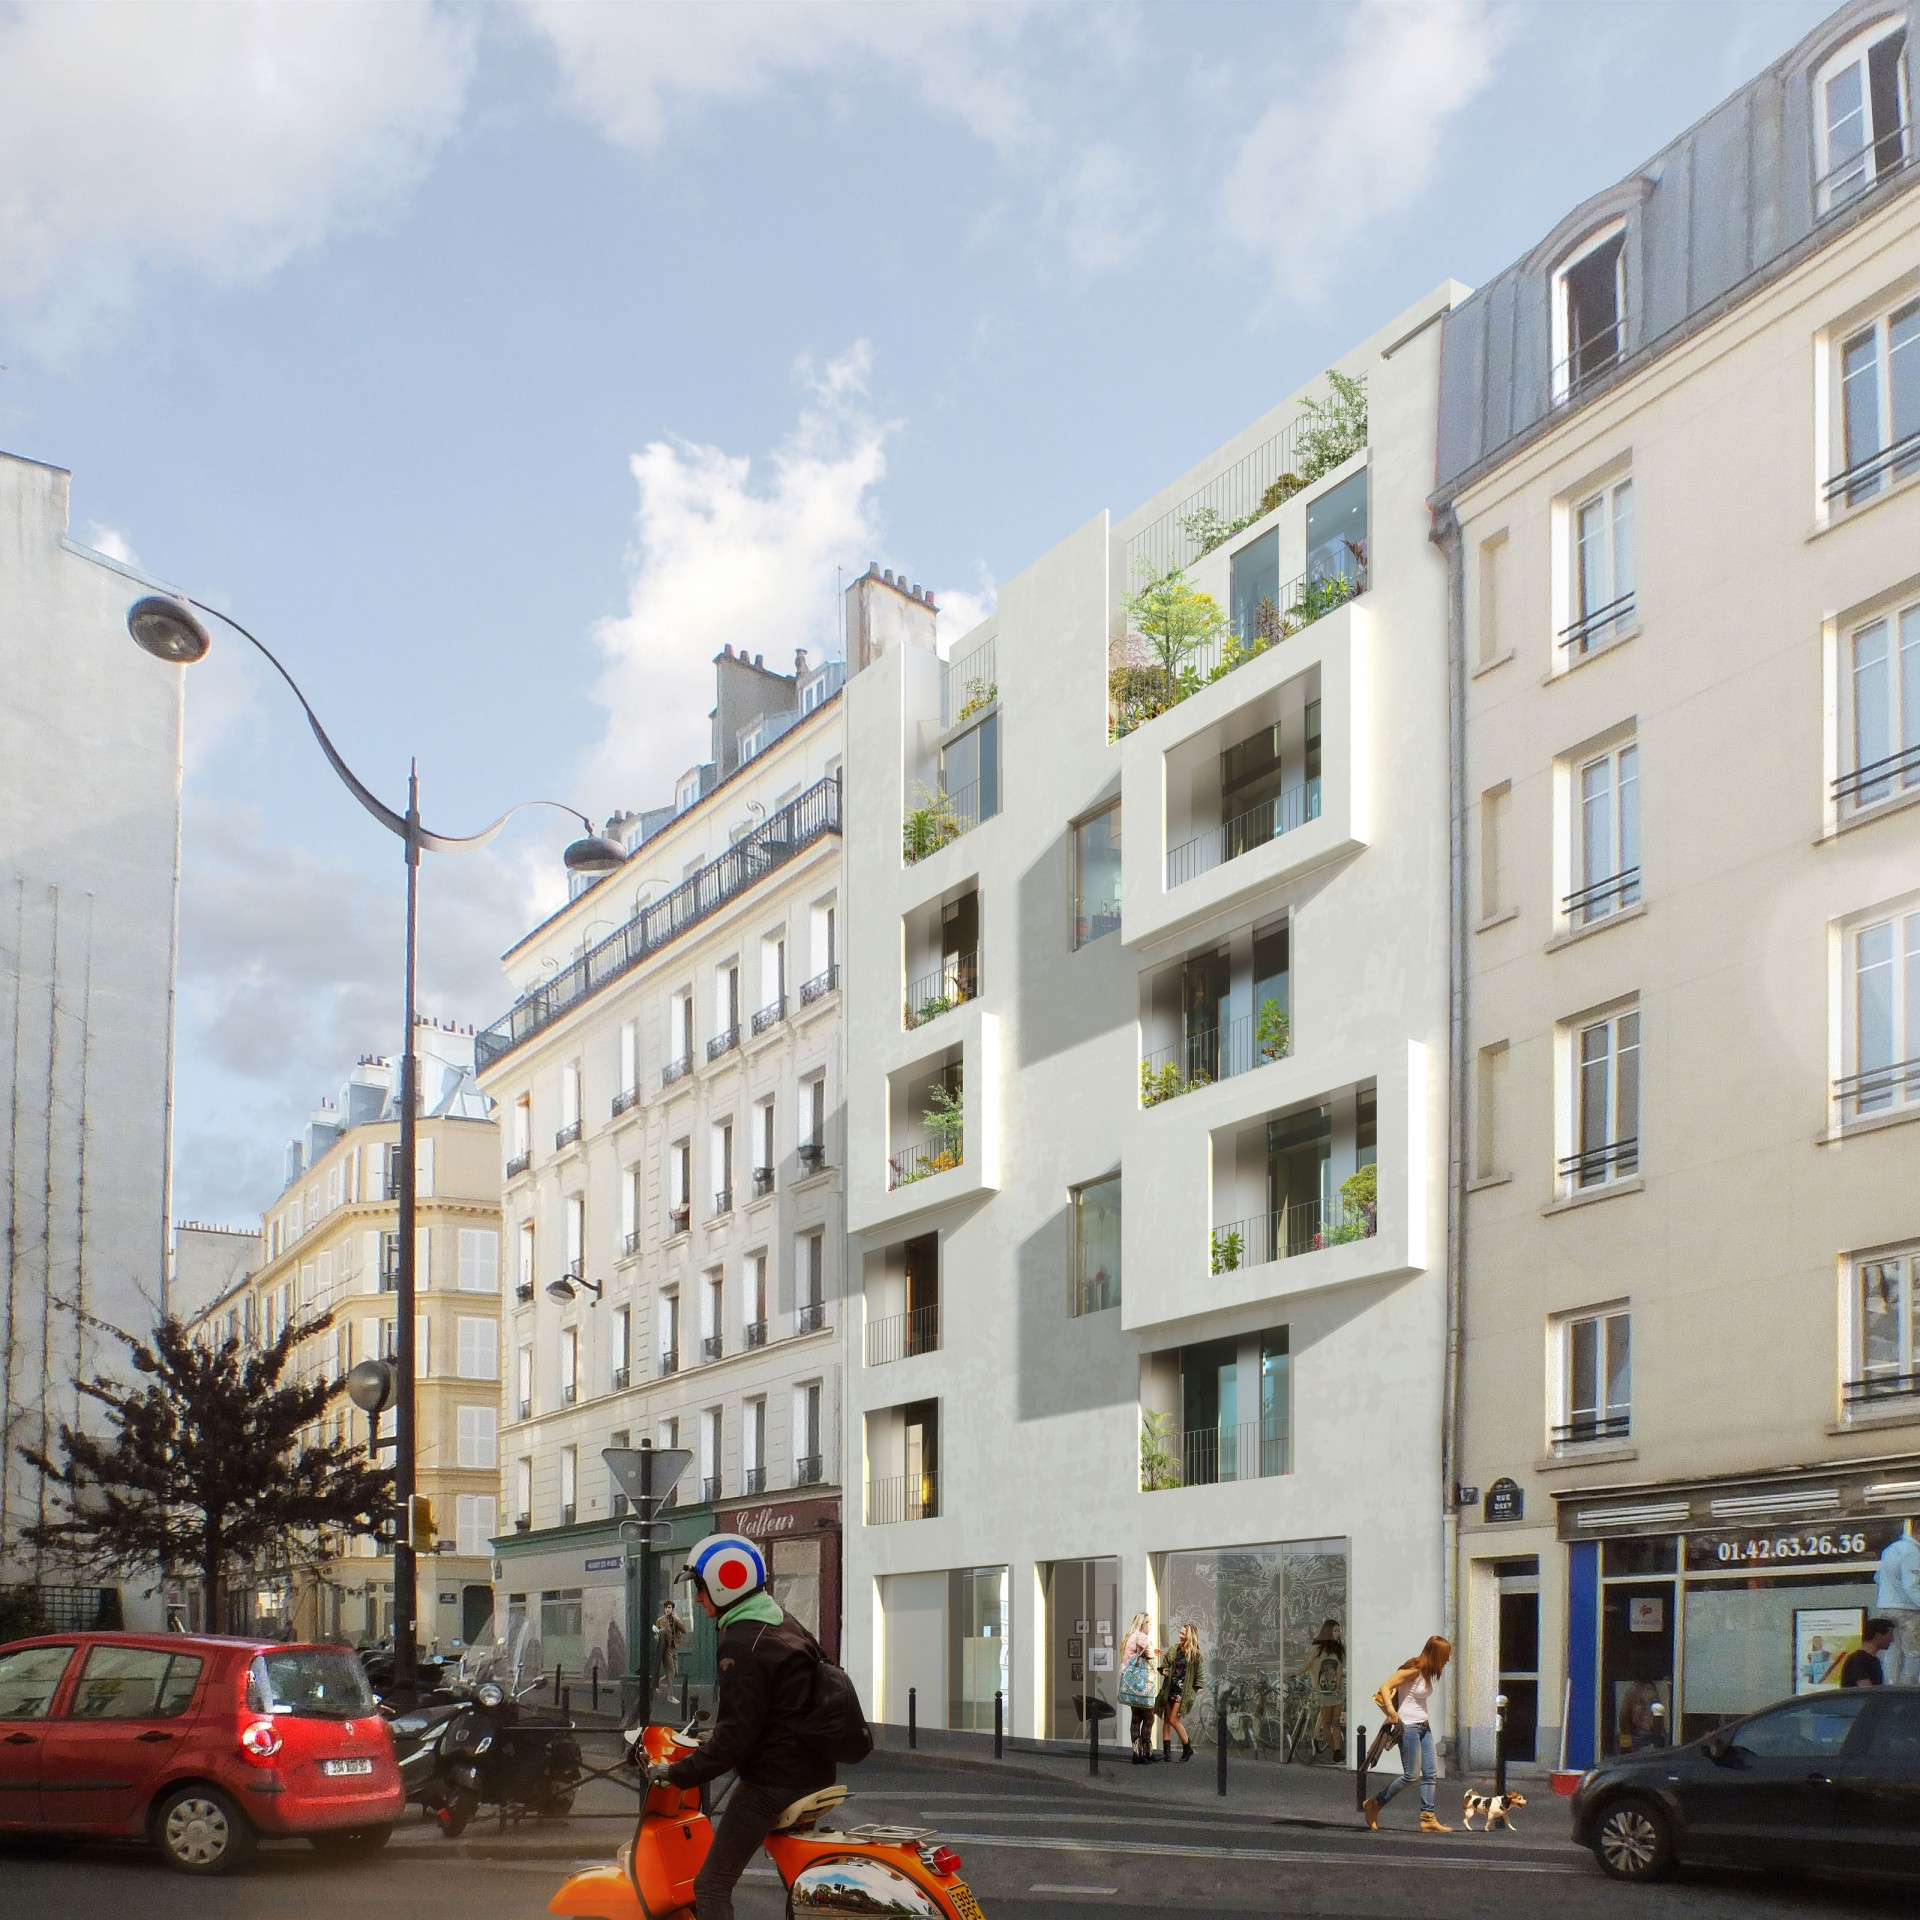 Paris (75017), 72 logements - Agence Catherine Dormoy Architectes